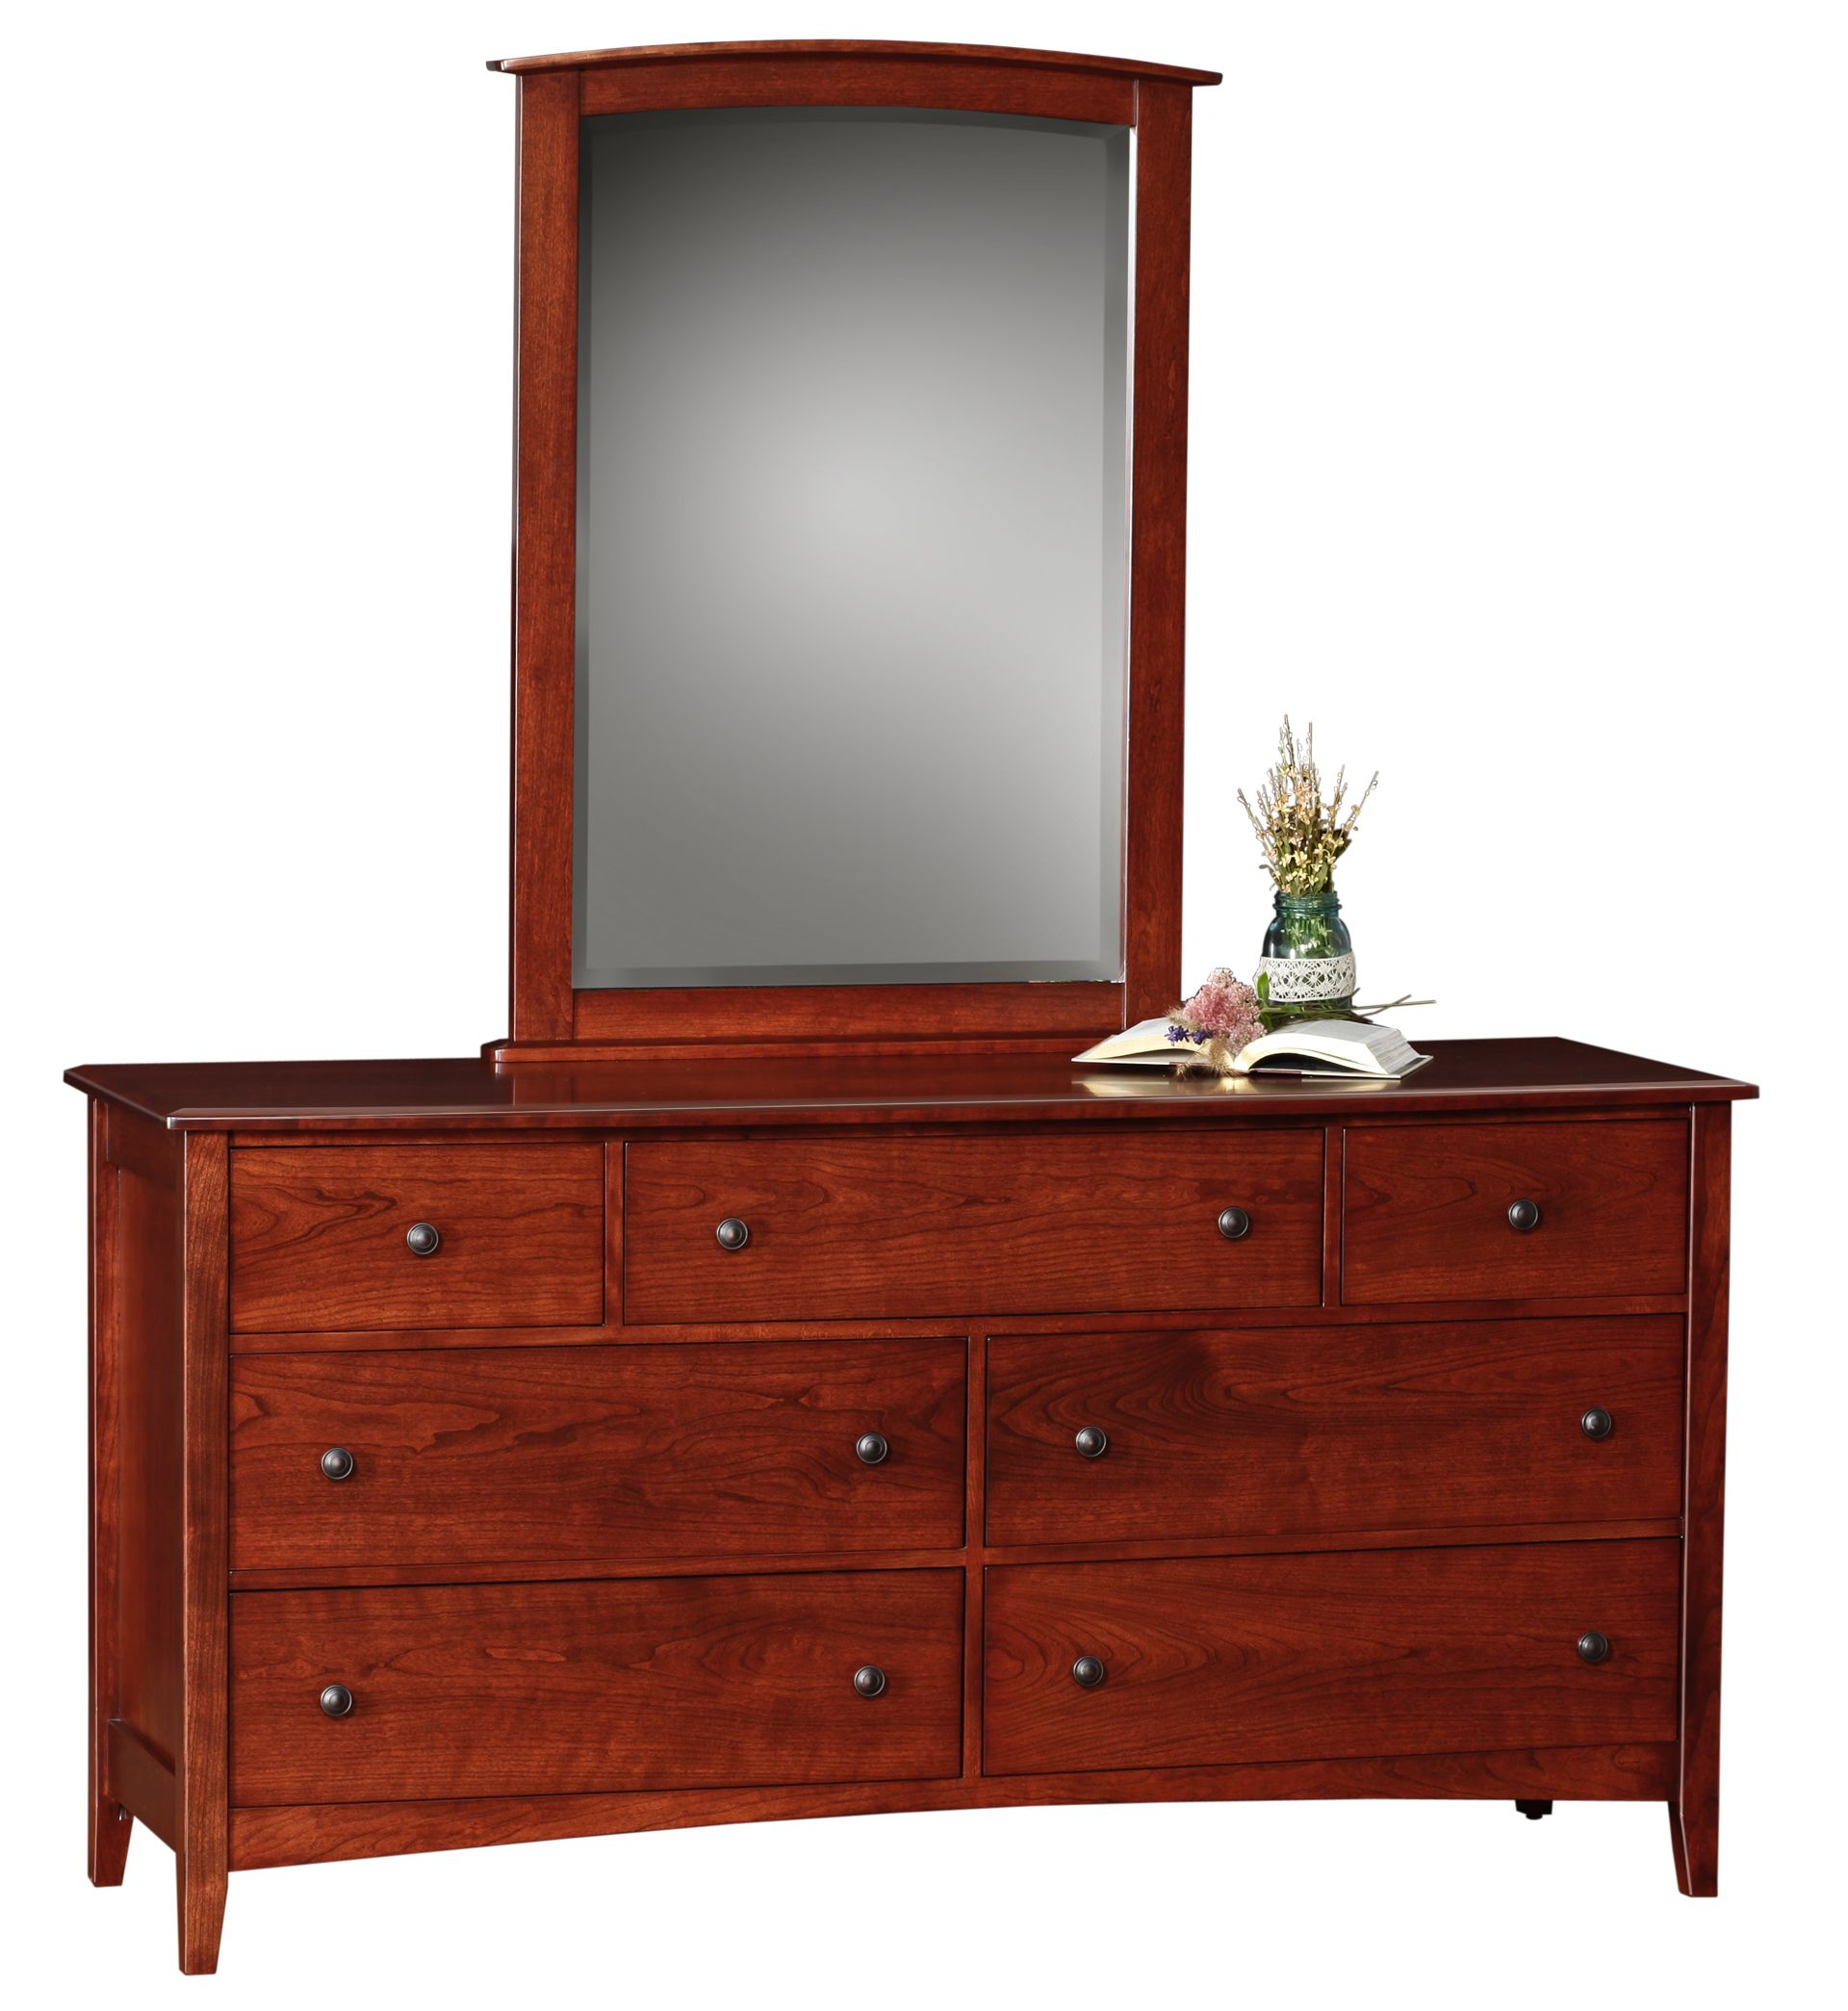 Interesting Double Dresser Mirror With 7 Drawers